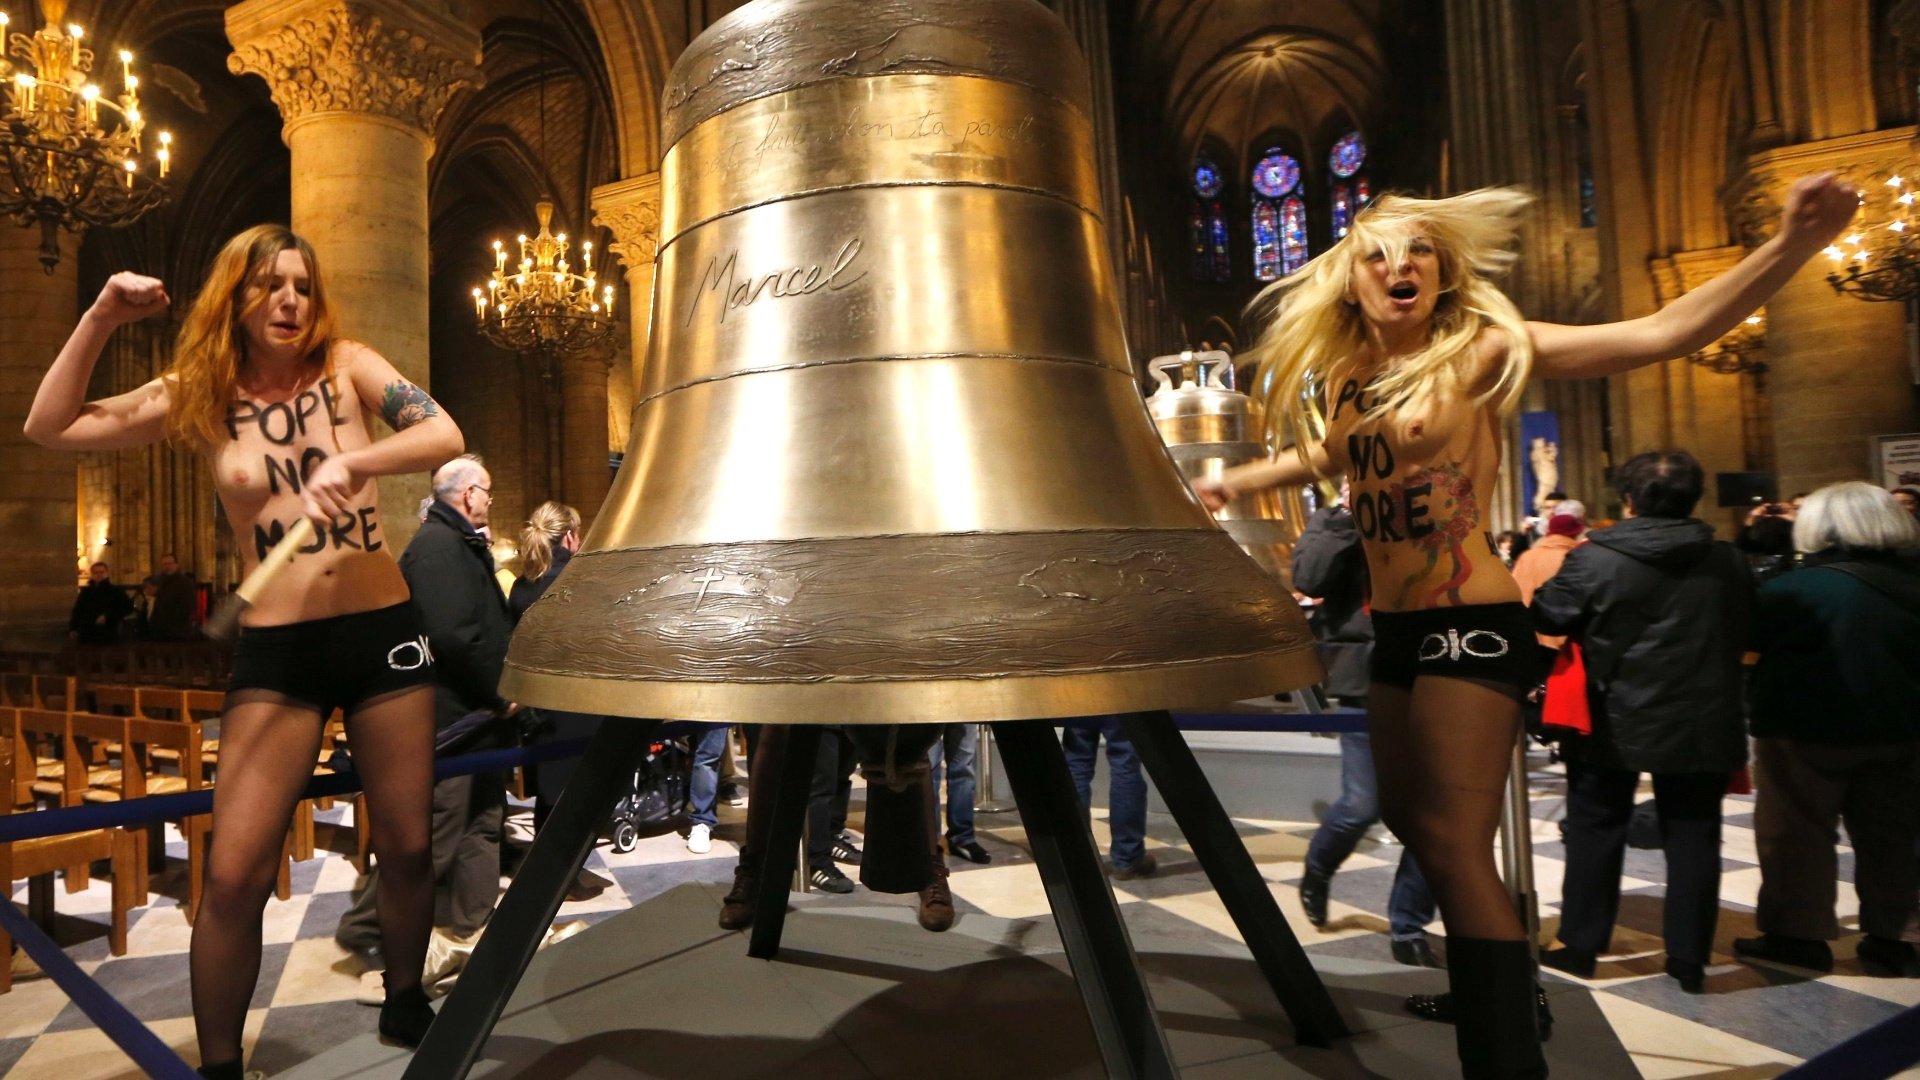 12.fev.2013 - Ativistas do Femen protestam na nave da Catedral de Notre-Dame, em Paris (Frana), para celebrar a renncia do papa Bento 16 e a deciso do Parlamento francs de aprovar proposta de lei que permite o casamento homossexual